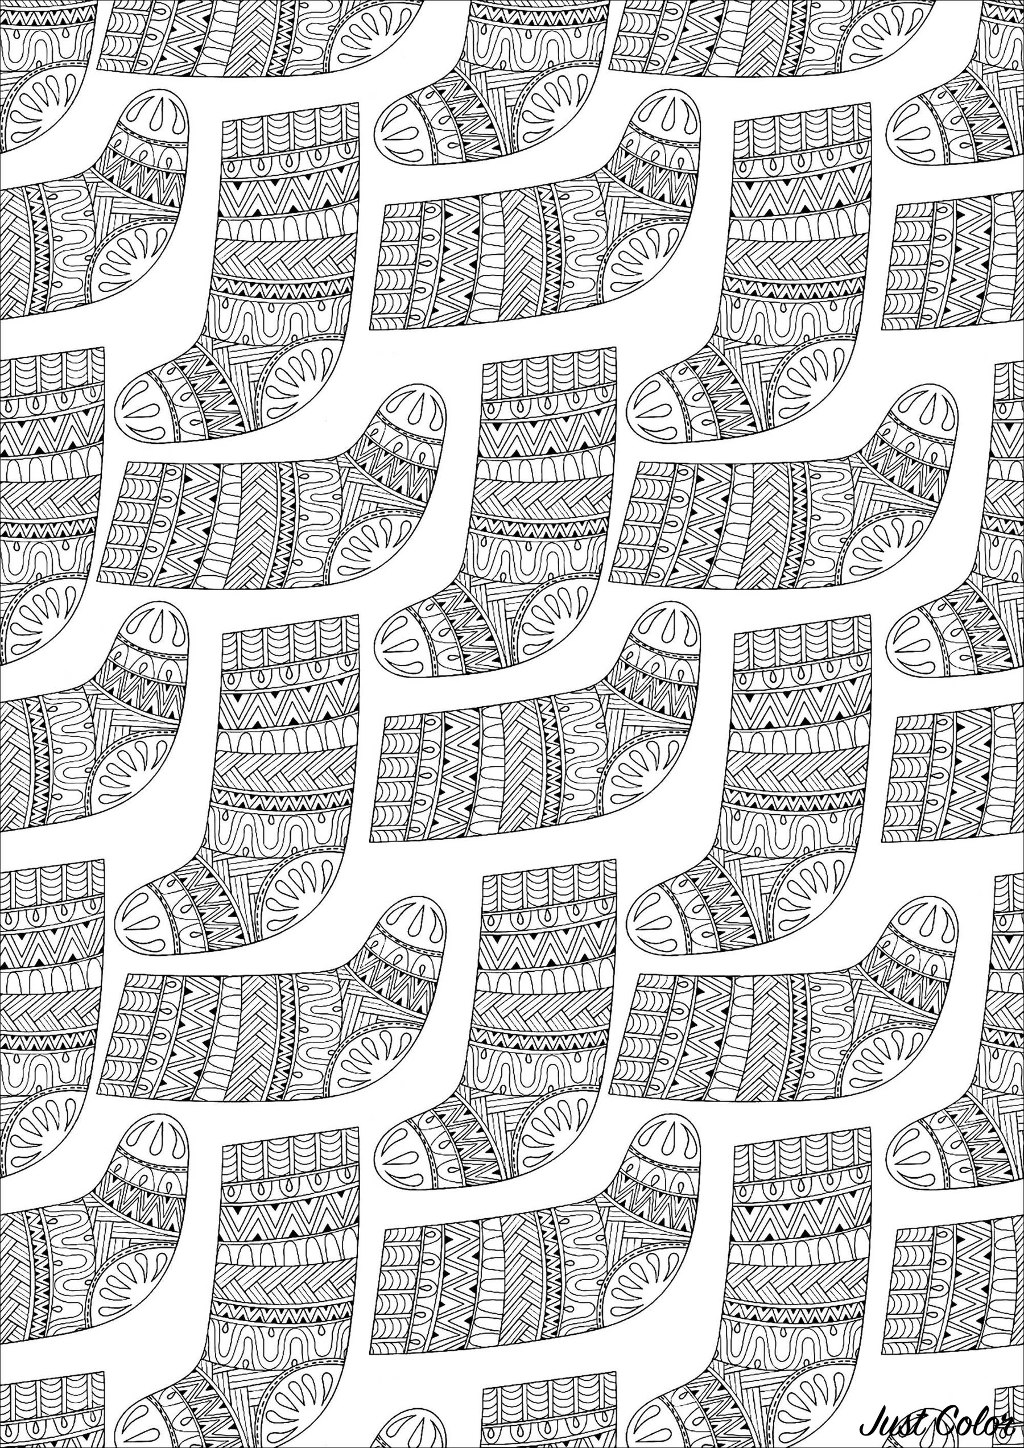 Color these cute Christmas socks with cool patterns and designs inside